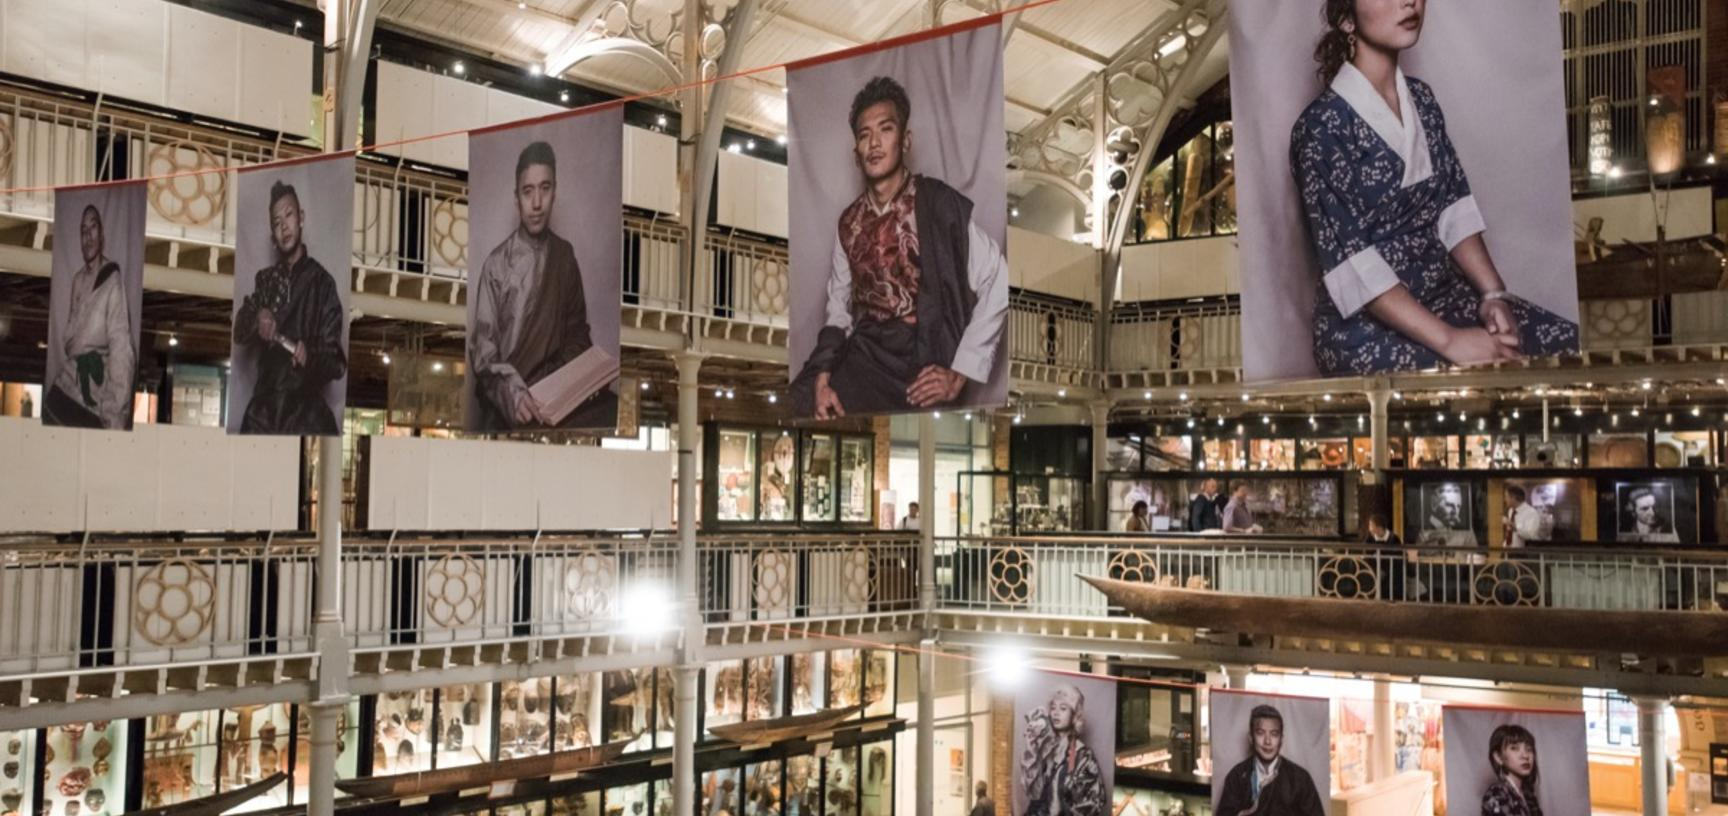 'Performing Tibetan Identities: Photographic Portraits by Nyema Droma', Pitt Rivers Museum, University of Oxford, 13 October 2018 to 30 May 2019.